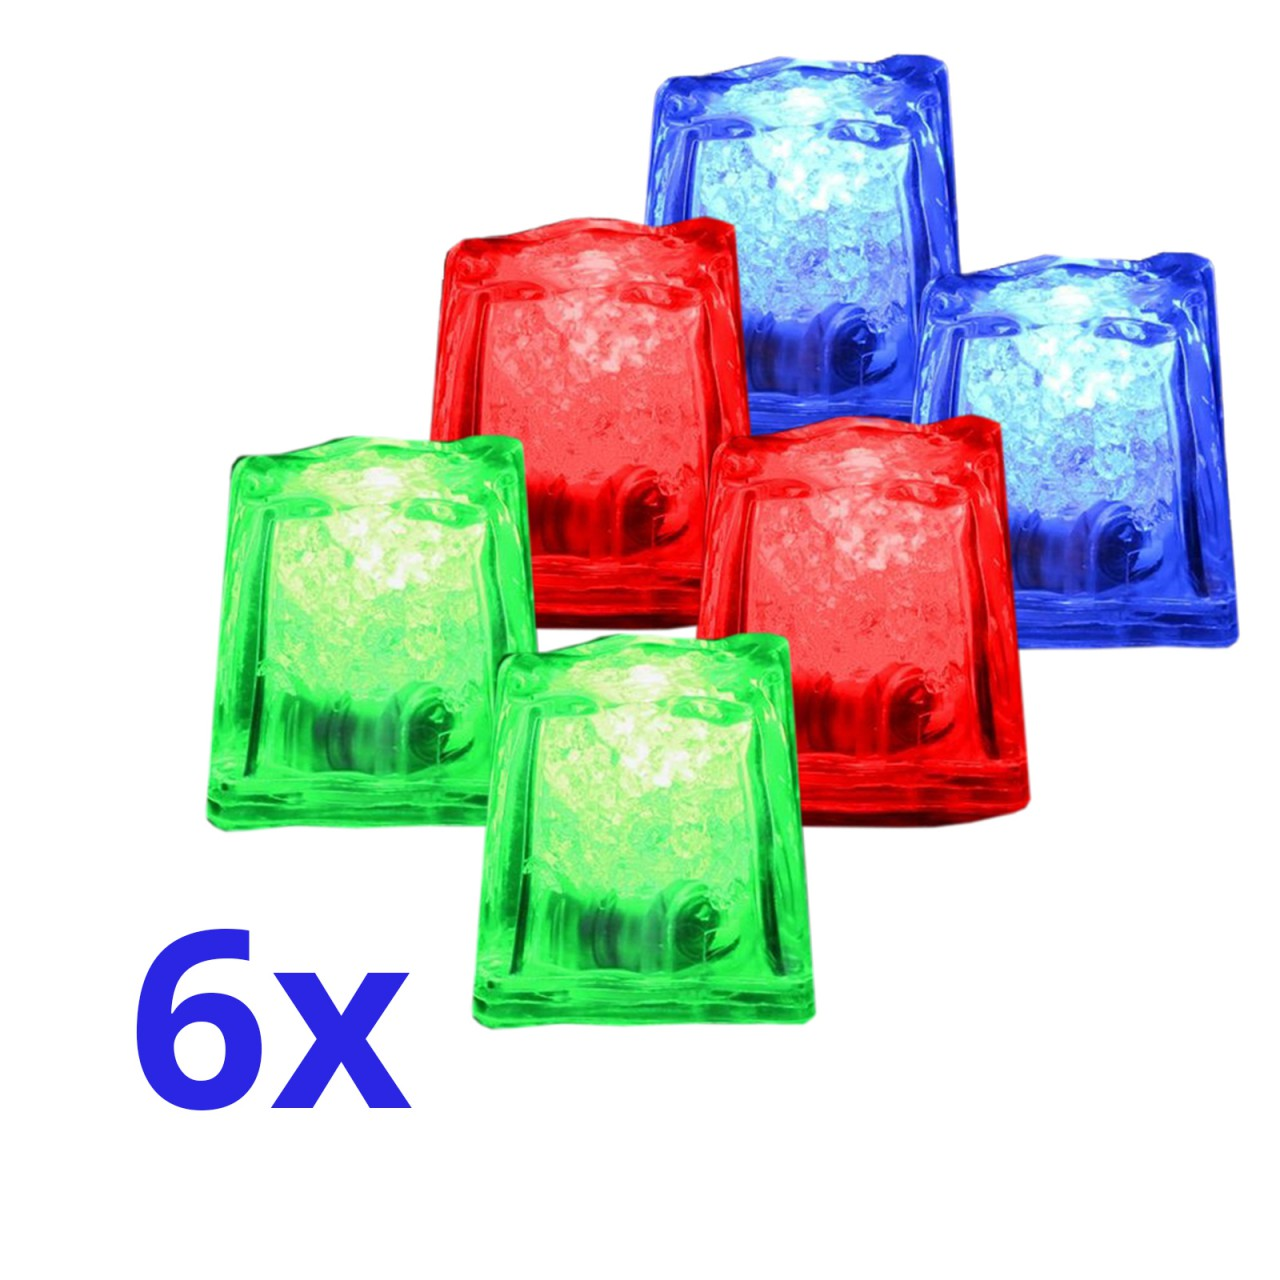 6x LED - Ice Cubes IOIO LED 93